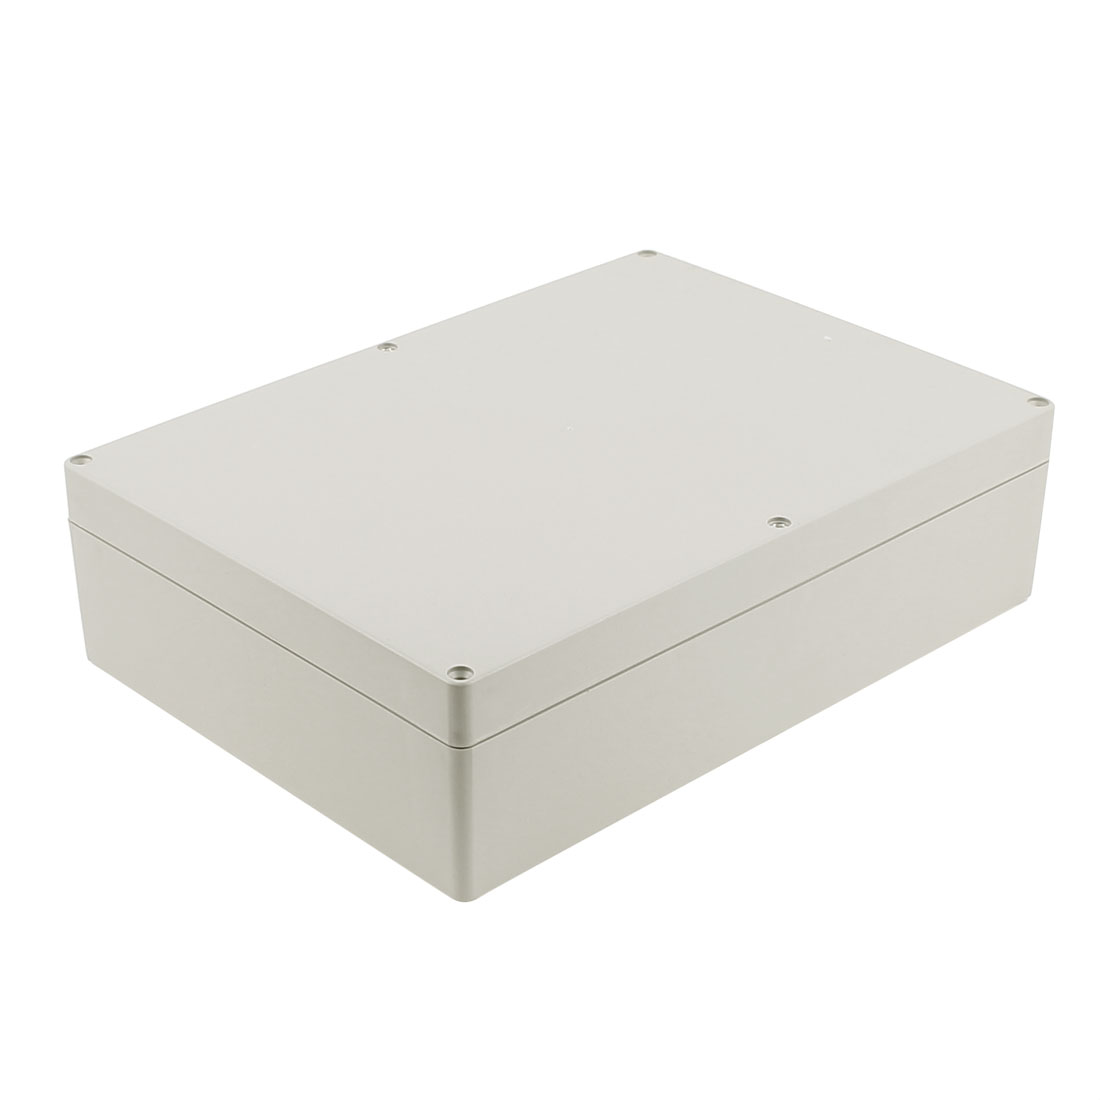 290 x 210 x 80mm Dustproof IP65 Junction Box Terminal Connecting Box Enclosure